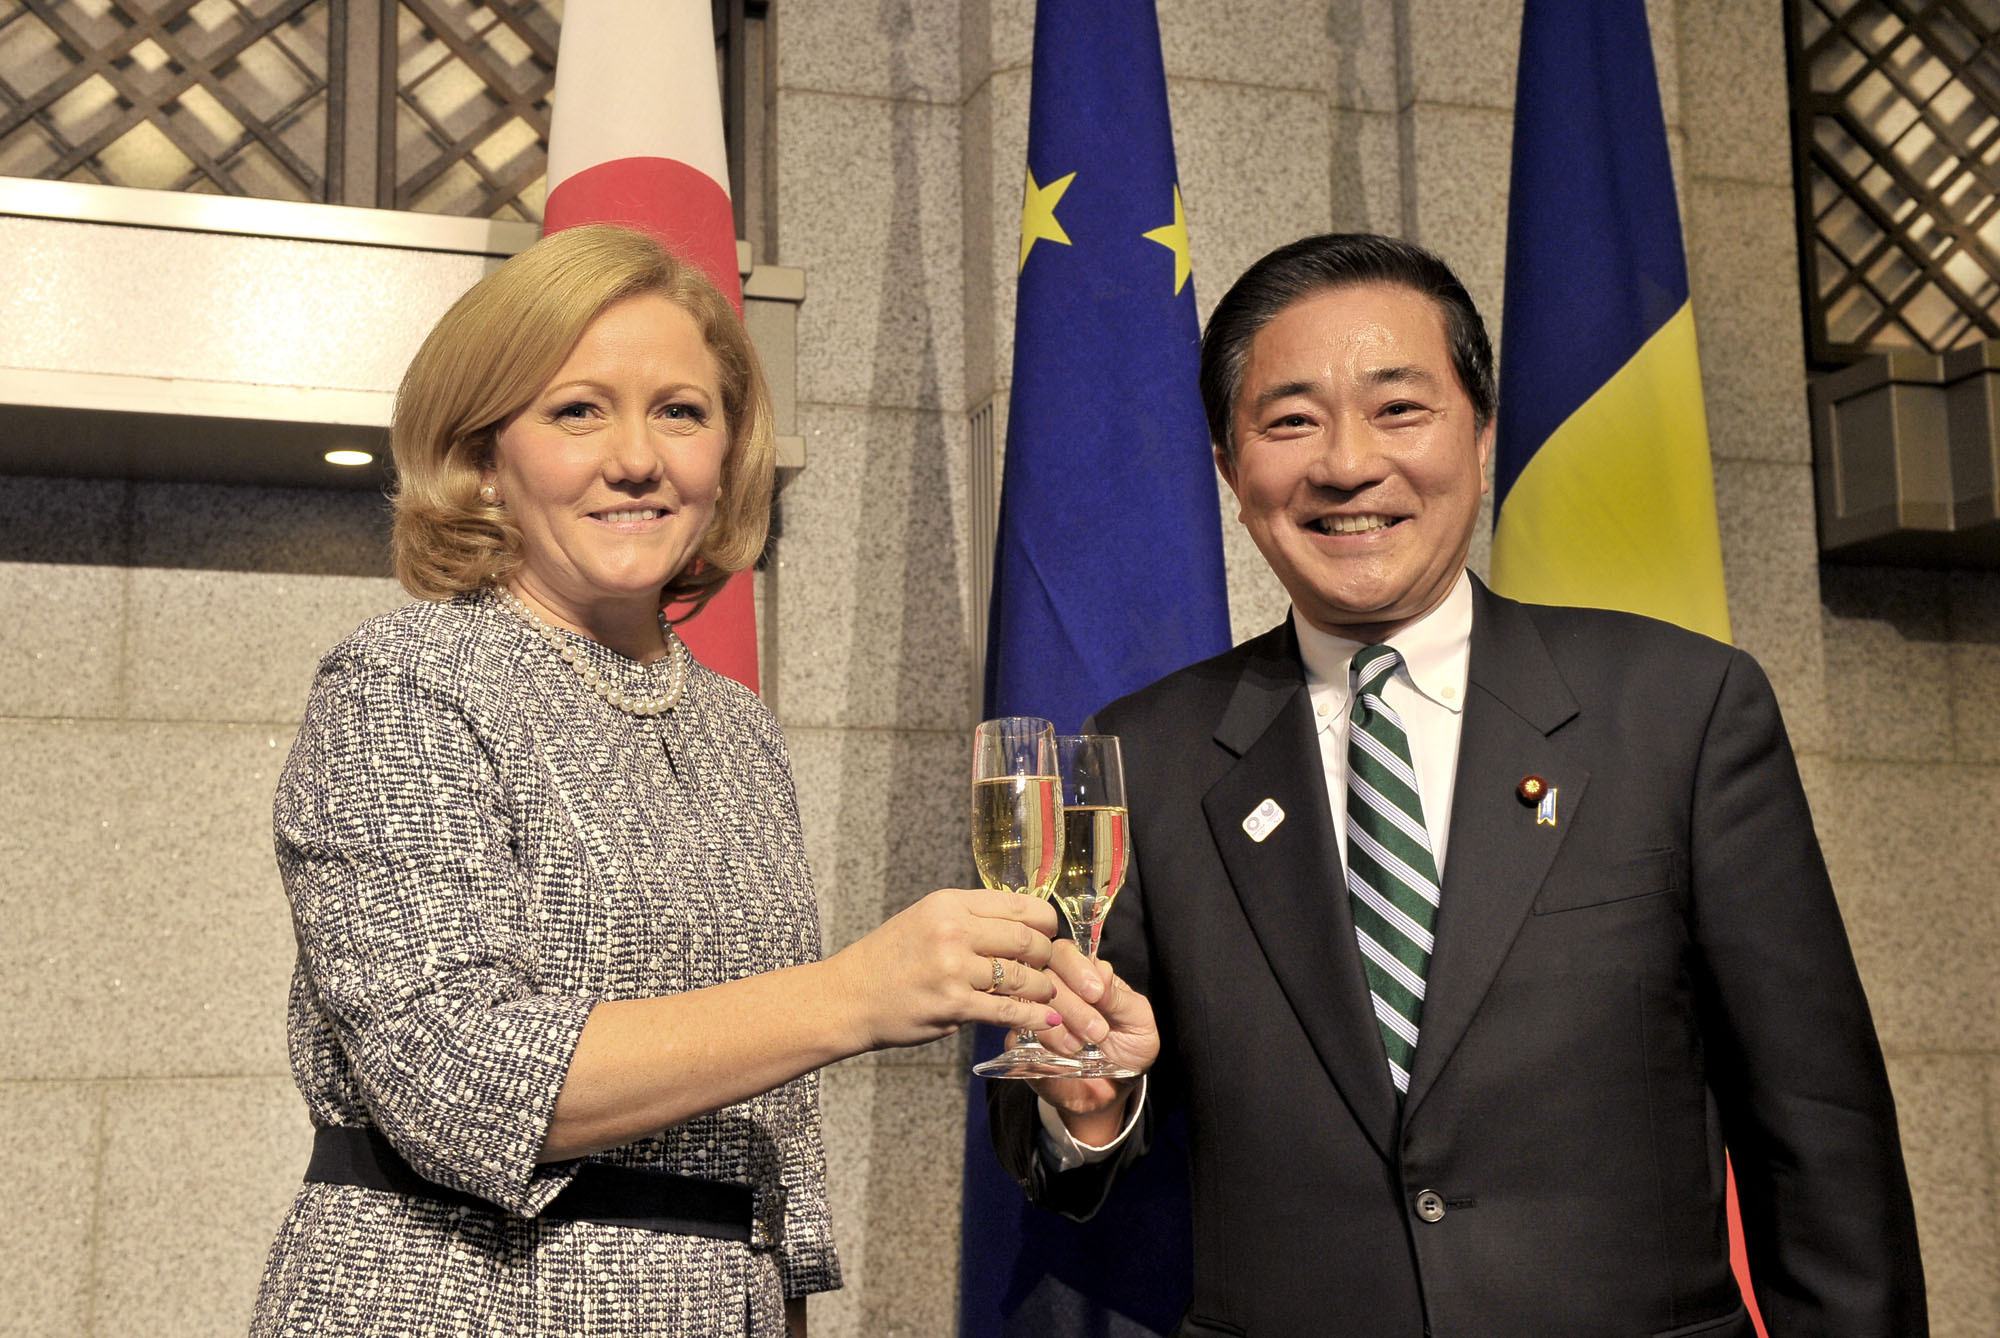 Romanian Ambassador Tatiana Iosiper (left) shares a toast with Japan-Romania Parliamentary Friendship League Secretary-General Akihisa Nagashima during a reception to celebrate Romania's national day at the Hotel Okura Tokyo on Nov. 30. | YOSHIAKI MIURA